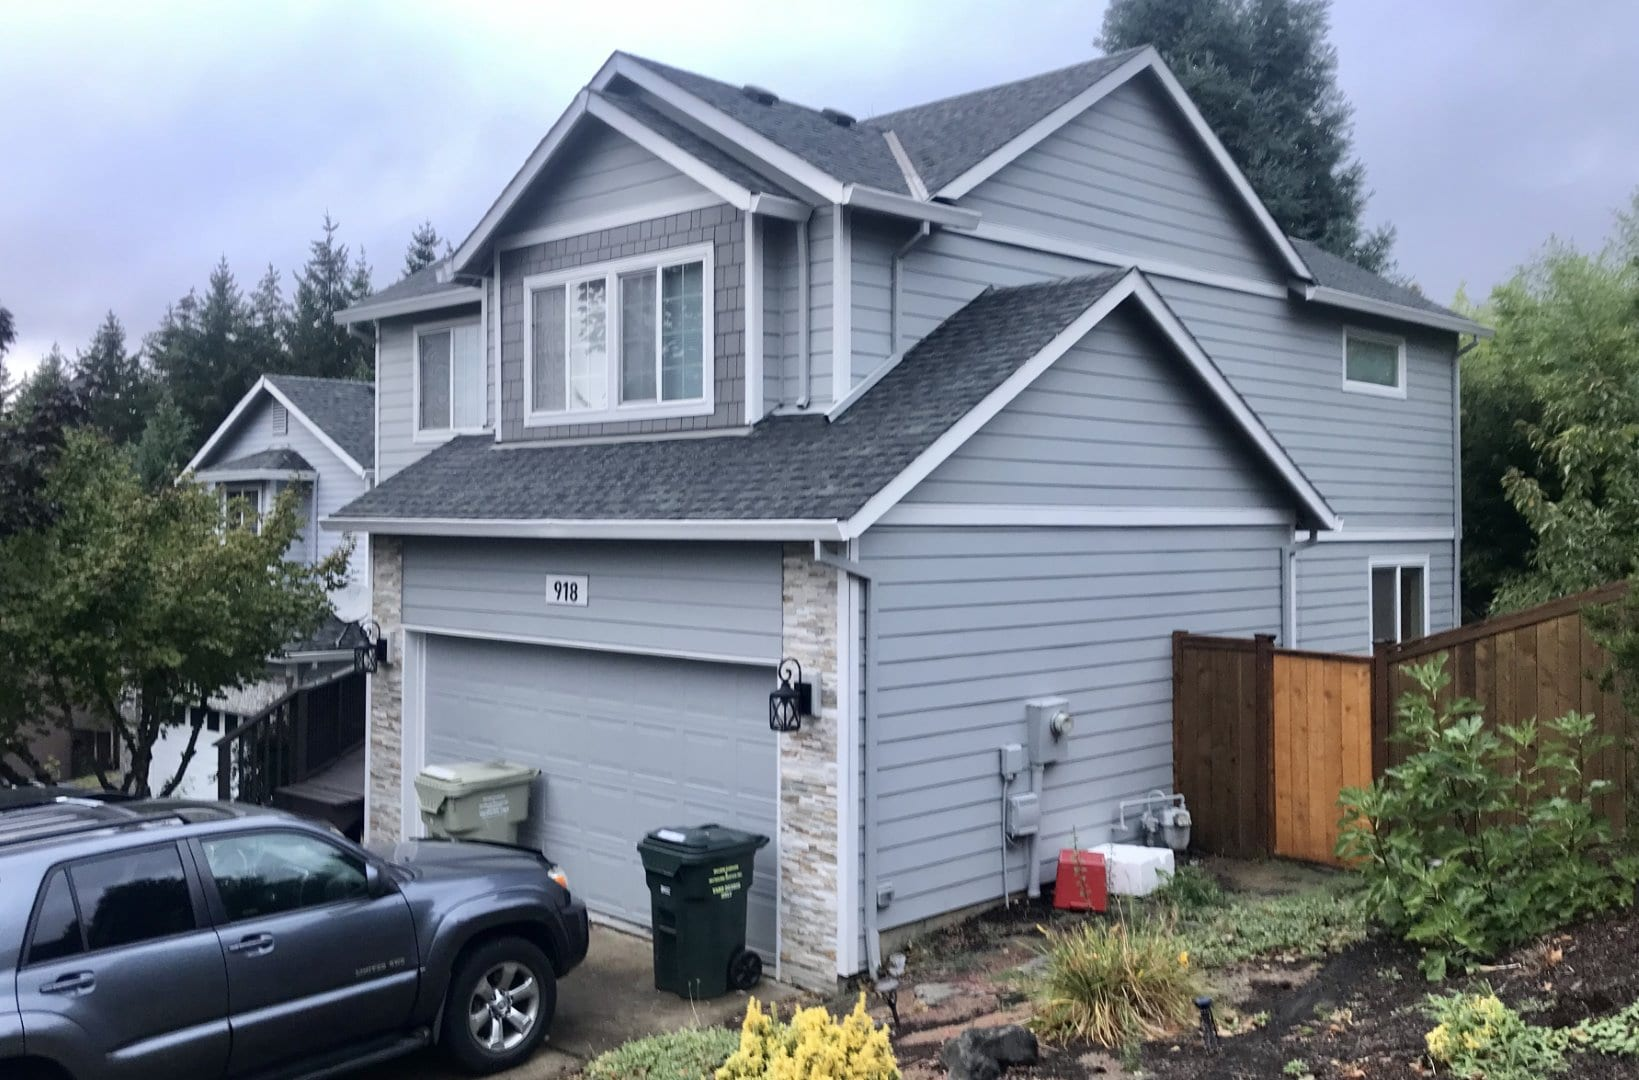 After install of New James Hardie Siding & Boral Stone